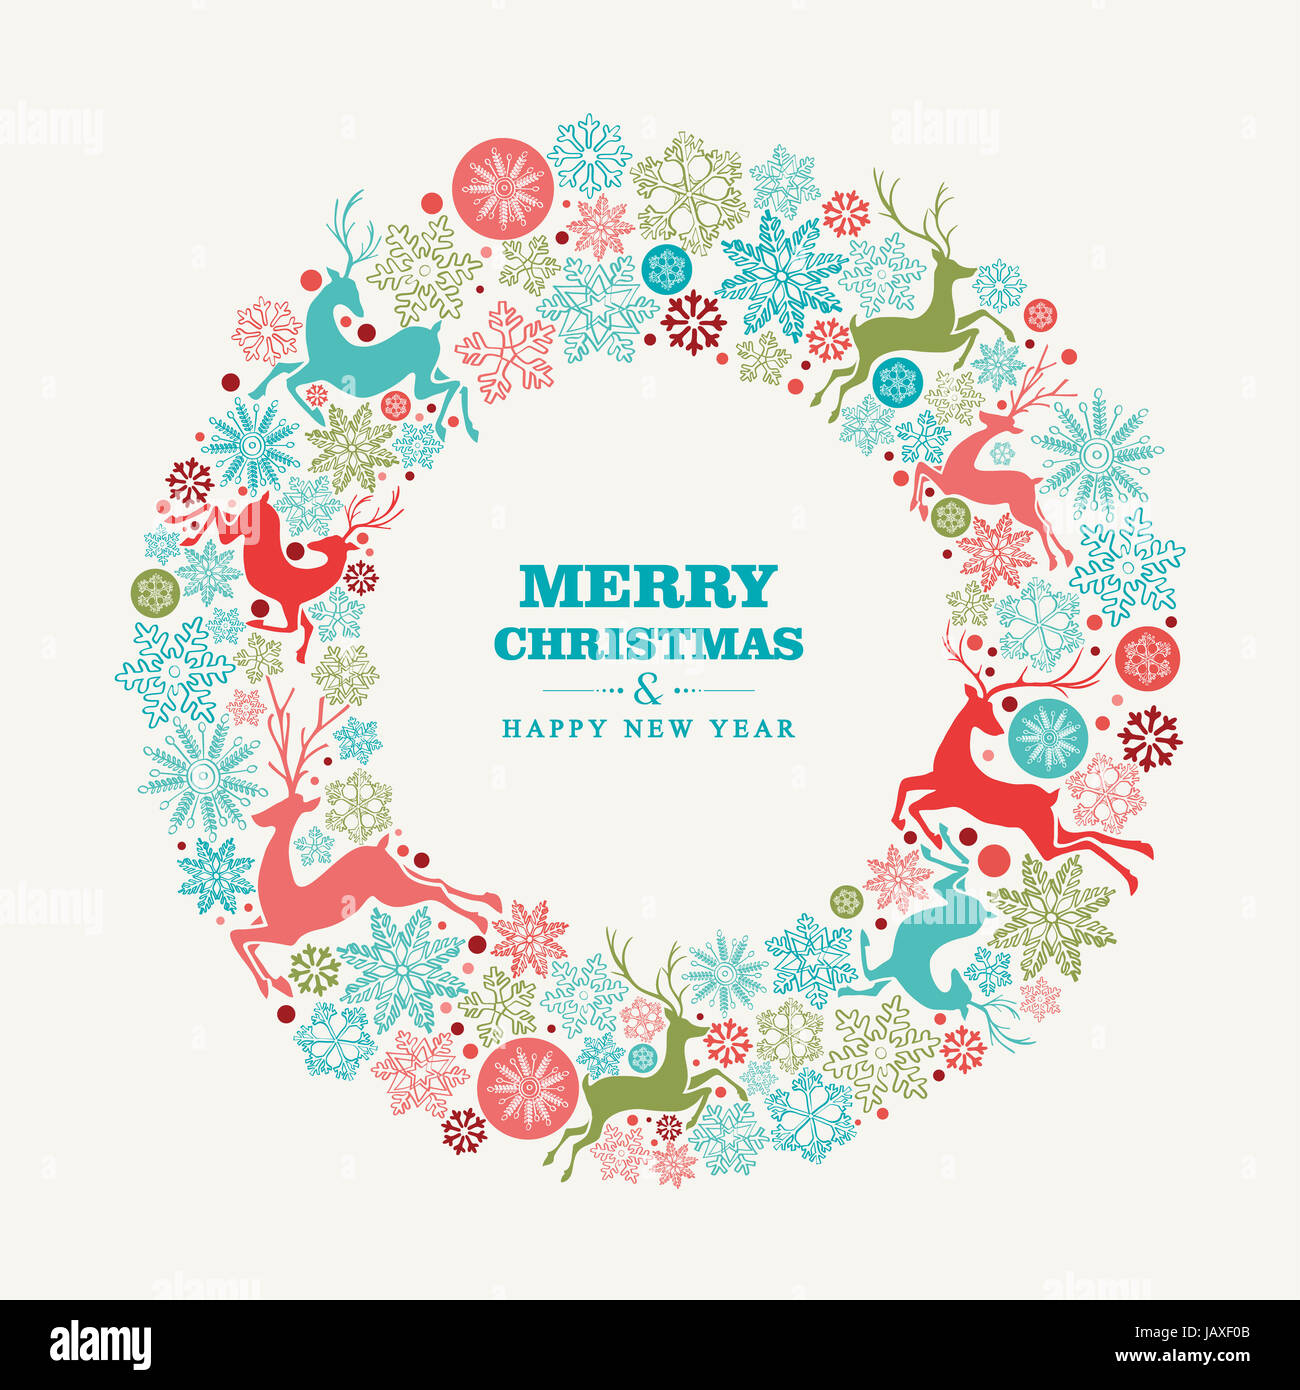 Merry christmas and happy new year wreath shape greeting card stock merry christmas and happy new year wreath shape greeting card background eps10 vector file organized in layers for easy editing m4hsunfo